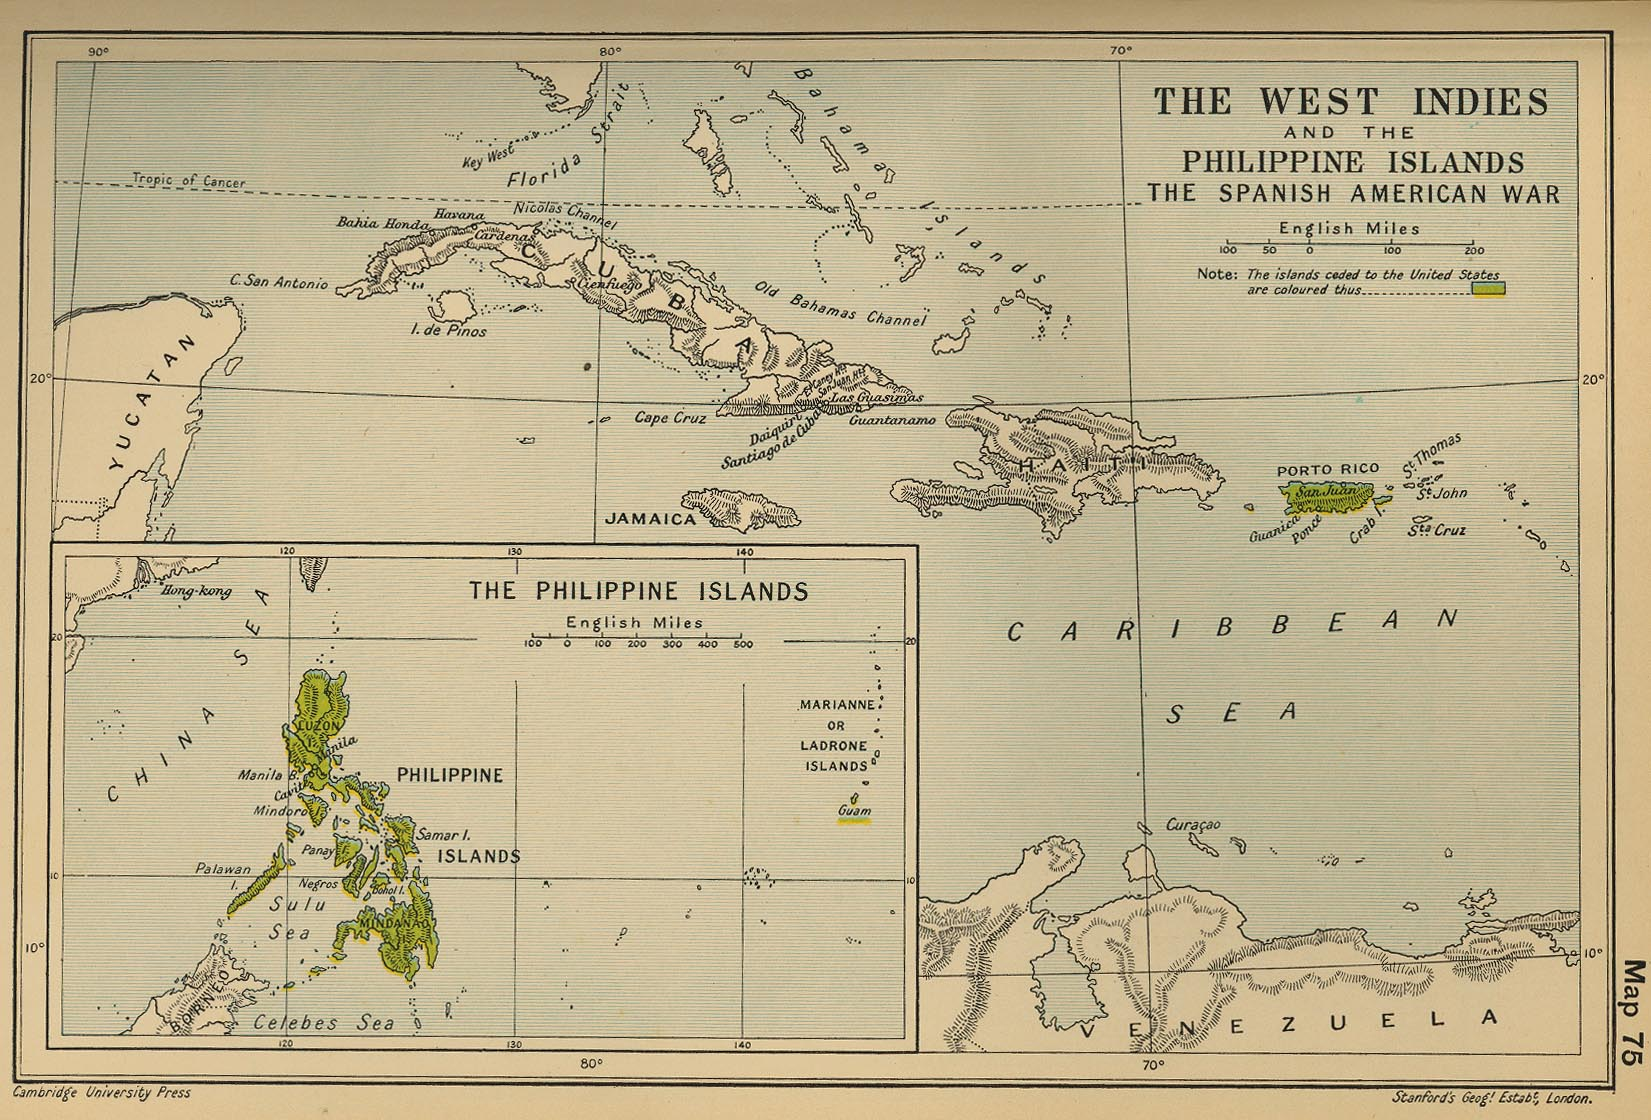 map 74 the west indies and the philippine islands the spanish american war